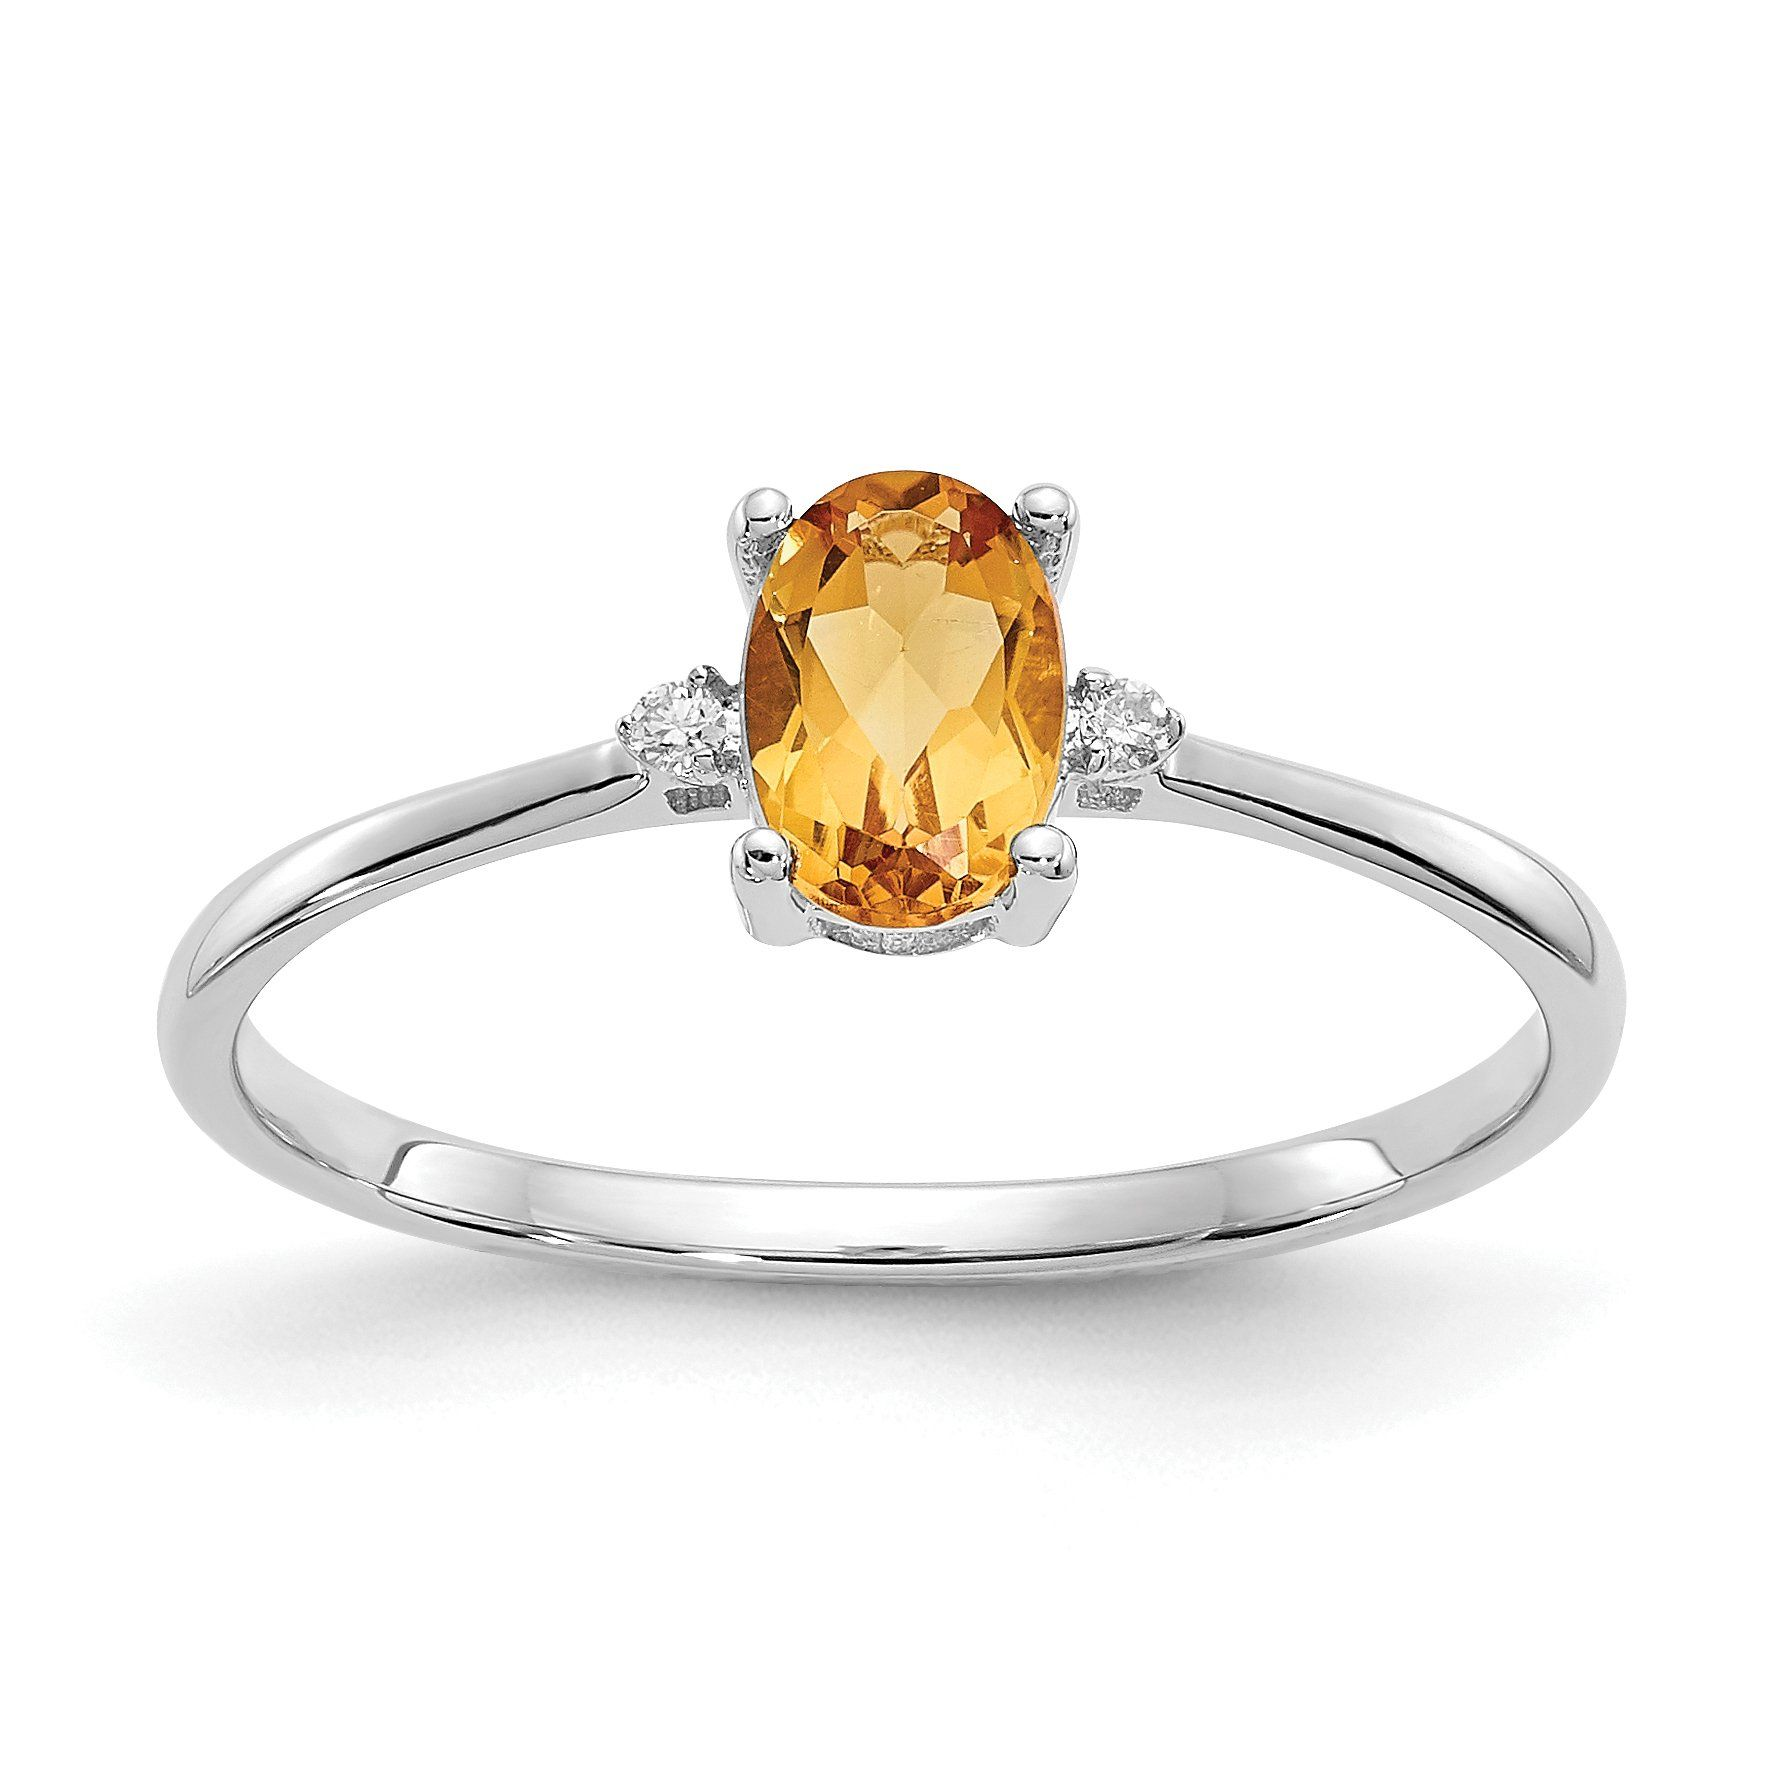 14k Or 10k White Gold Diamond Citrine Oval November Birthstone Ring Sparkle Jade Yellow Citrine Ring November Birthstone Ring Citrine Birthstone